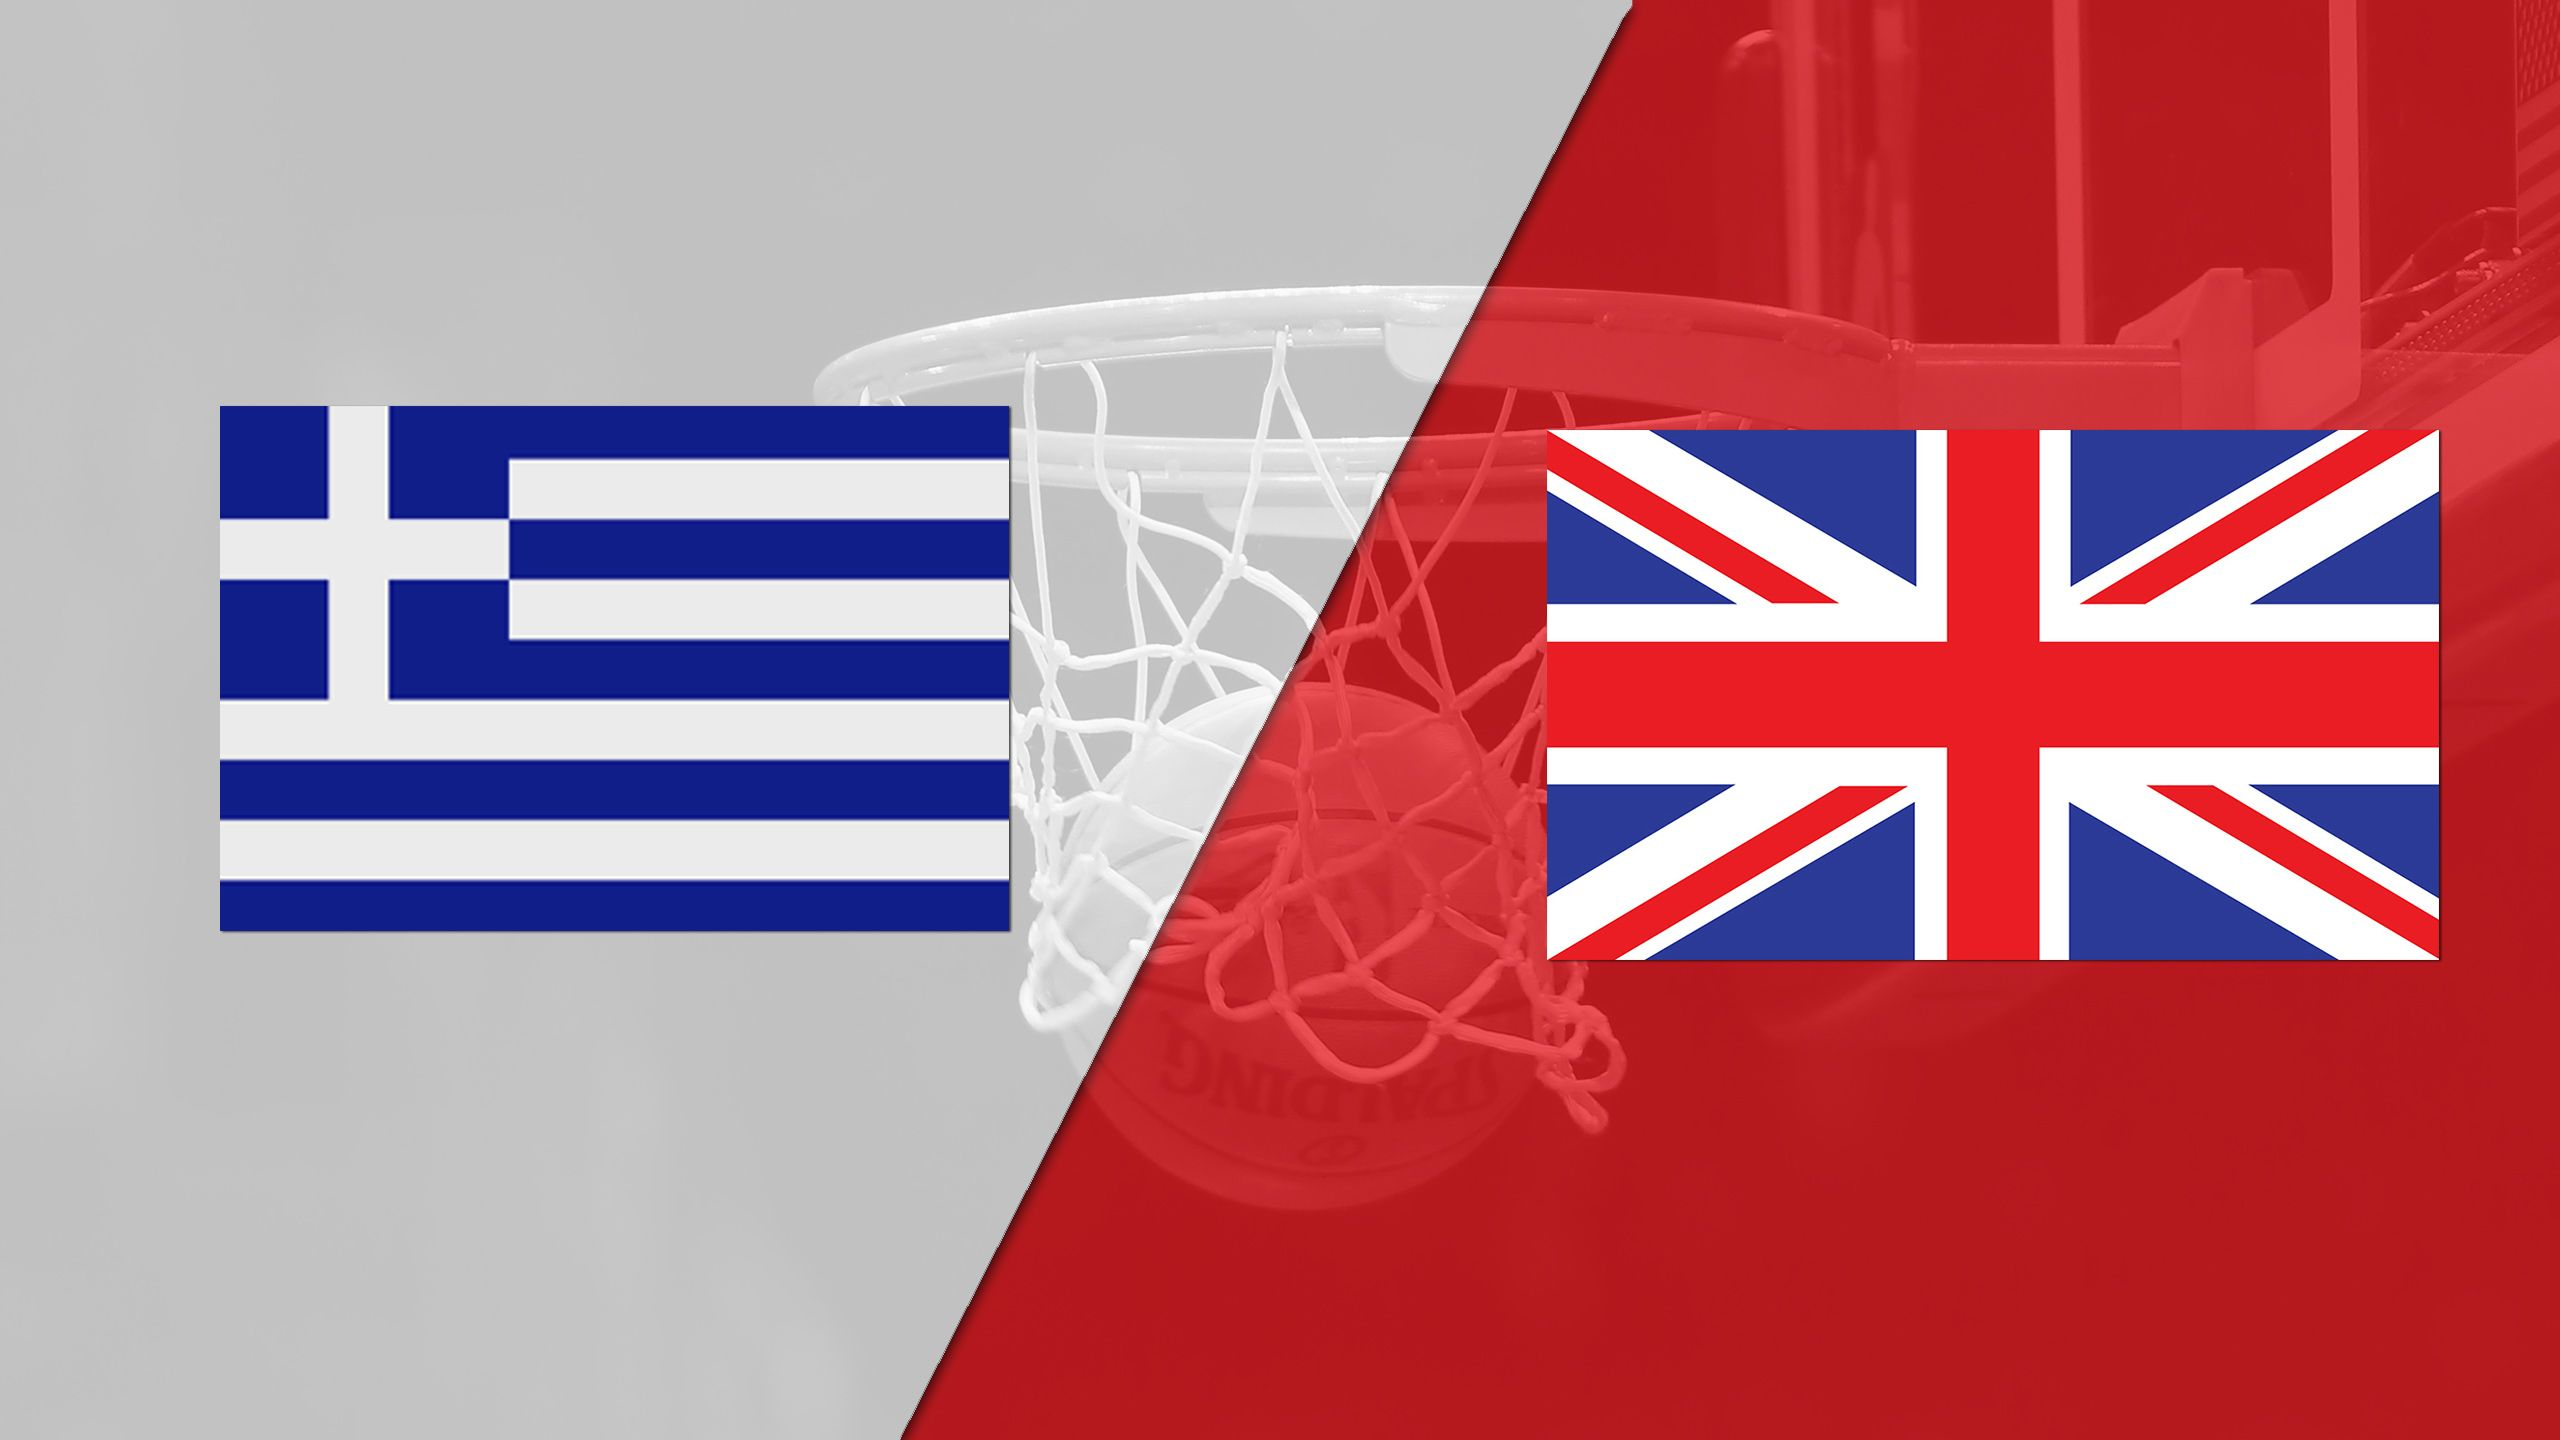 Greece vs. Great Britain (FIBA World Cup 2019 Qualifier)